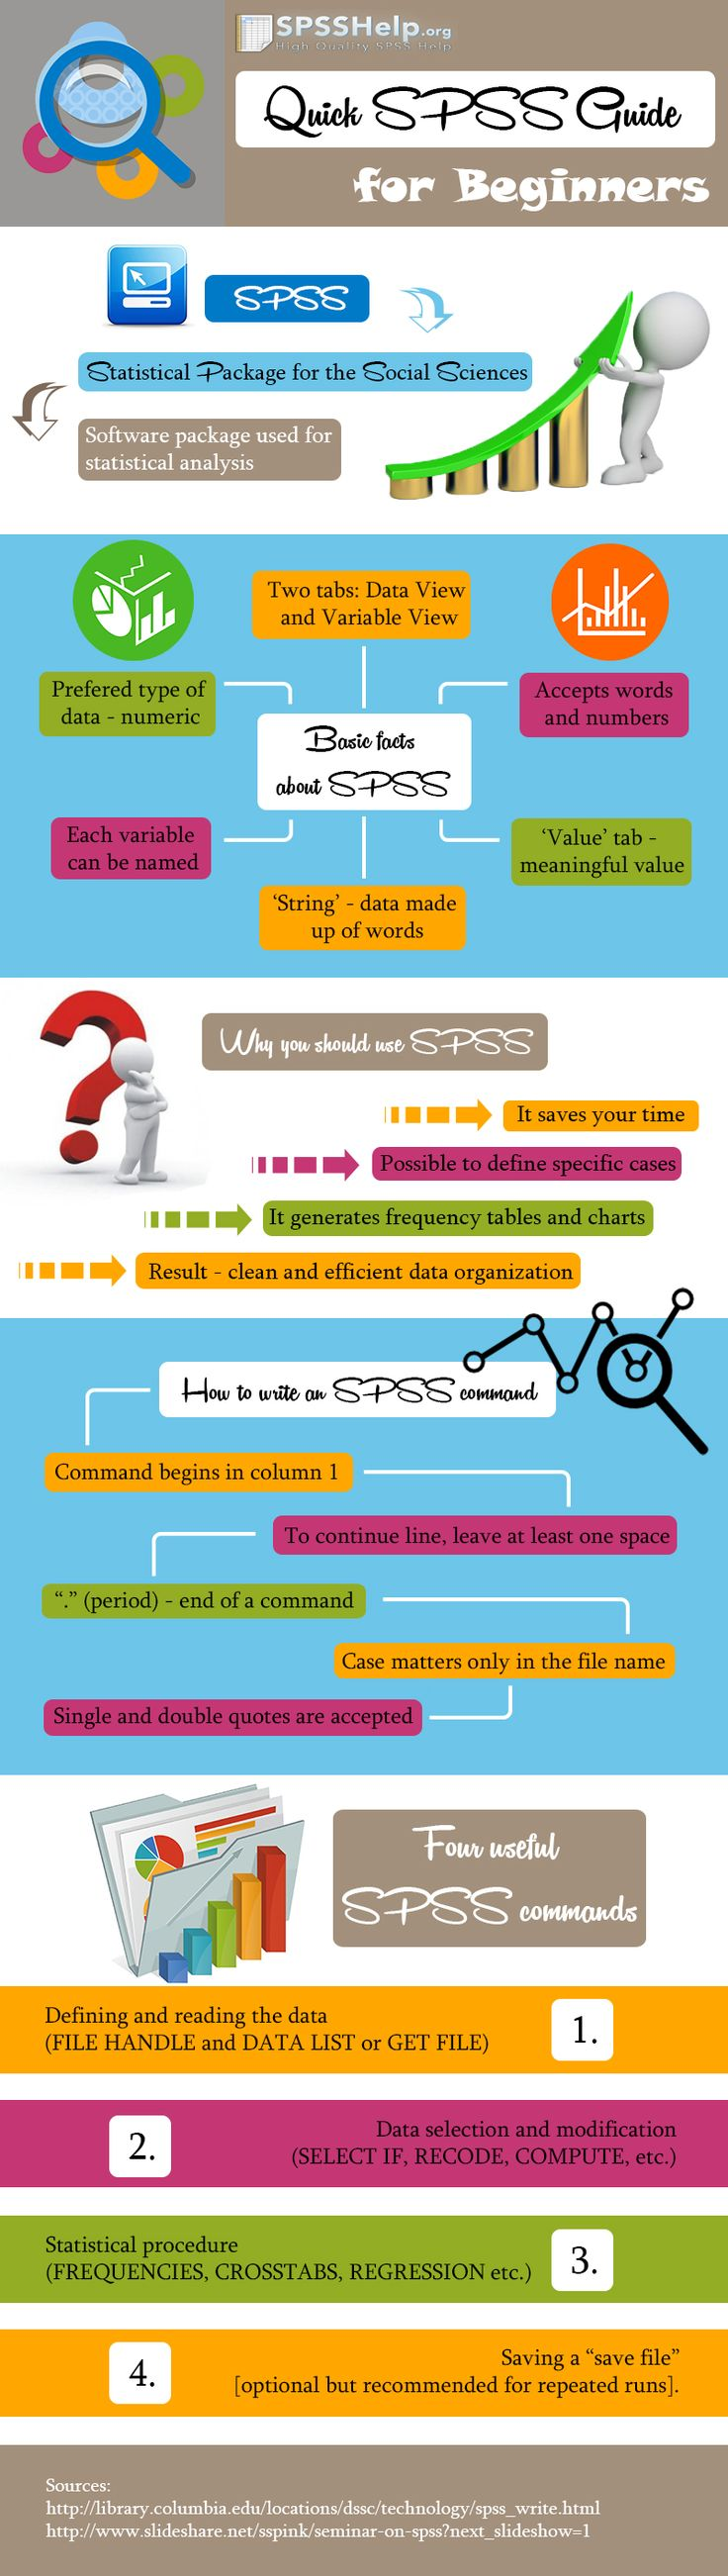 Our new infographic created to help you in getting started with SPSS software. Hope it will be useful!